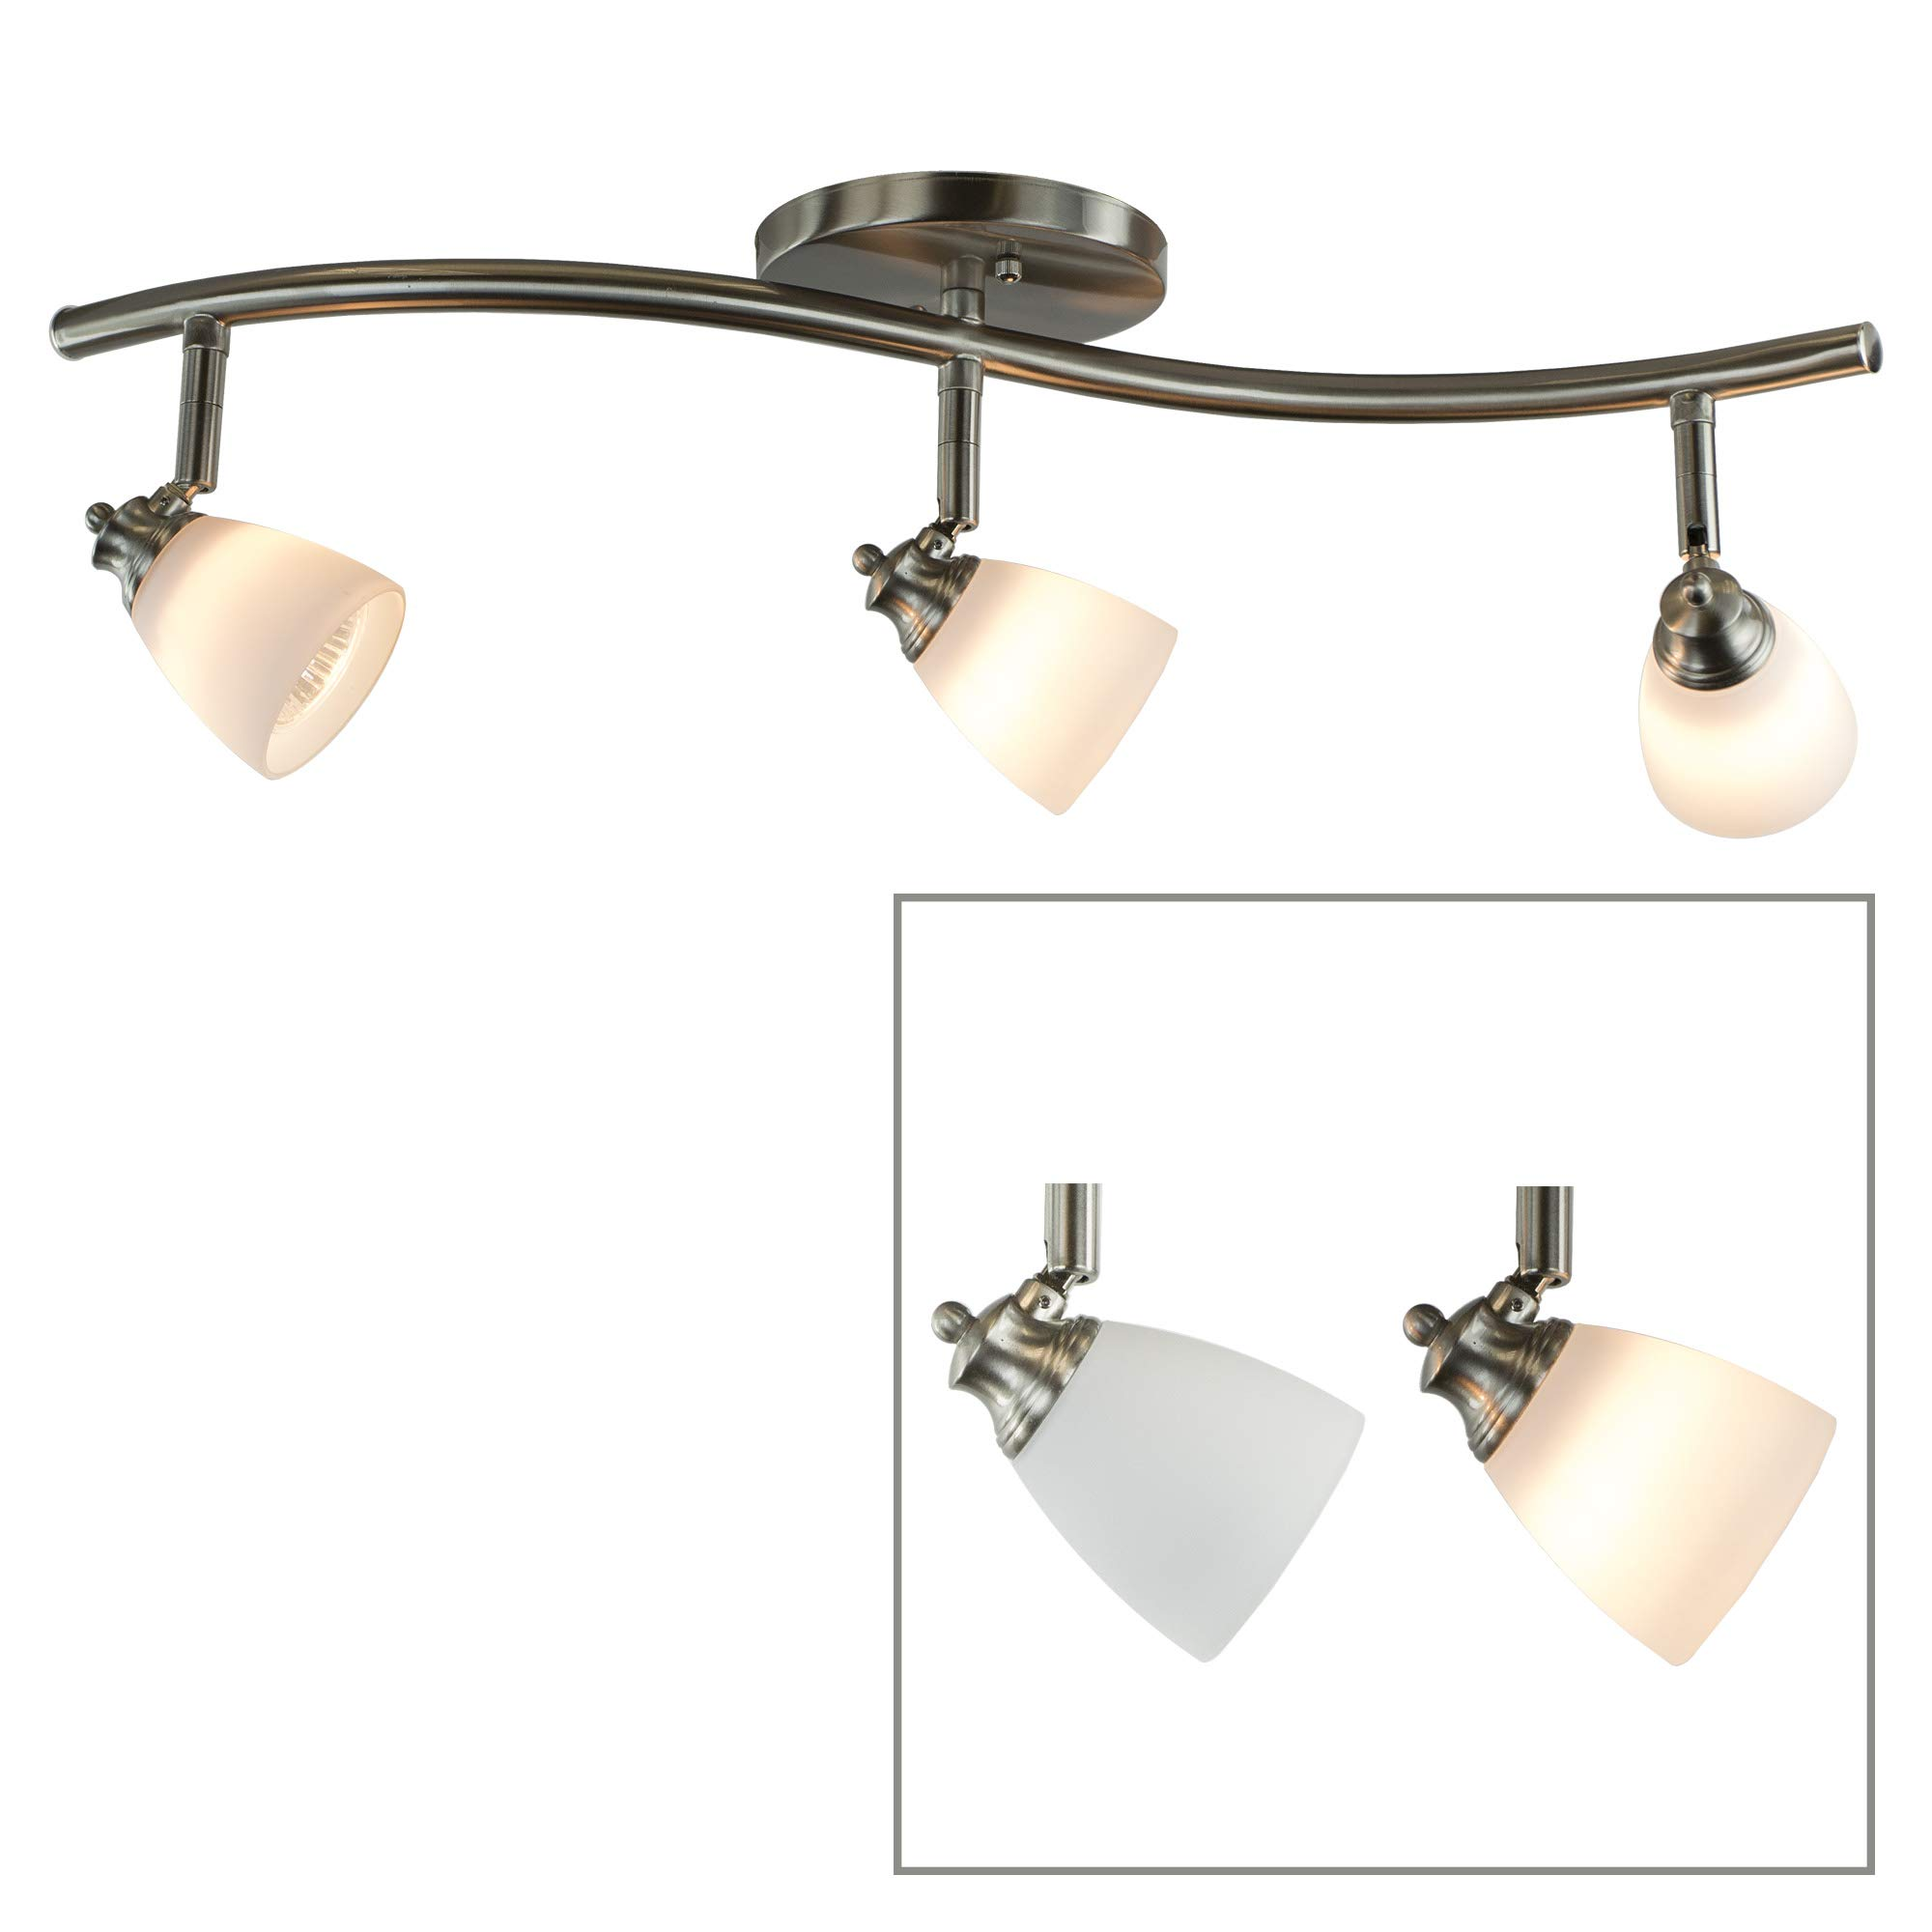 Direct-Lighting 3 Lights Adjustable Track Lighting Kit - Dark Bronze Finish - White Glass Track Heads - GU10 Bulbs Included. D268-23C-DB-WH